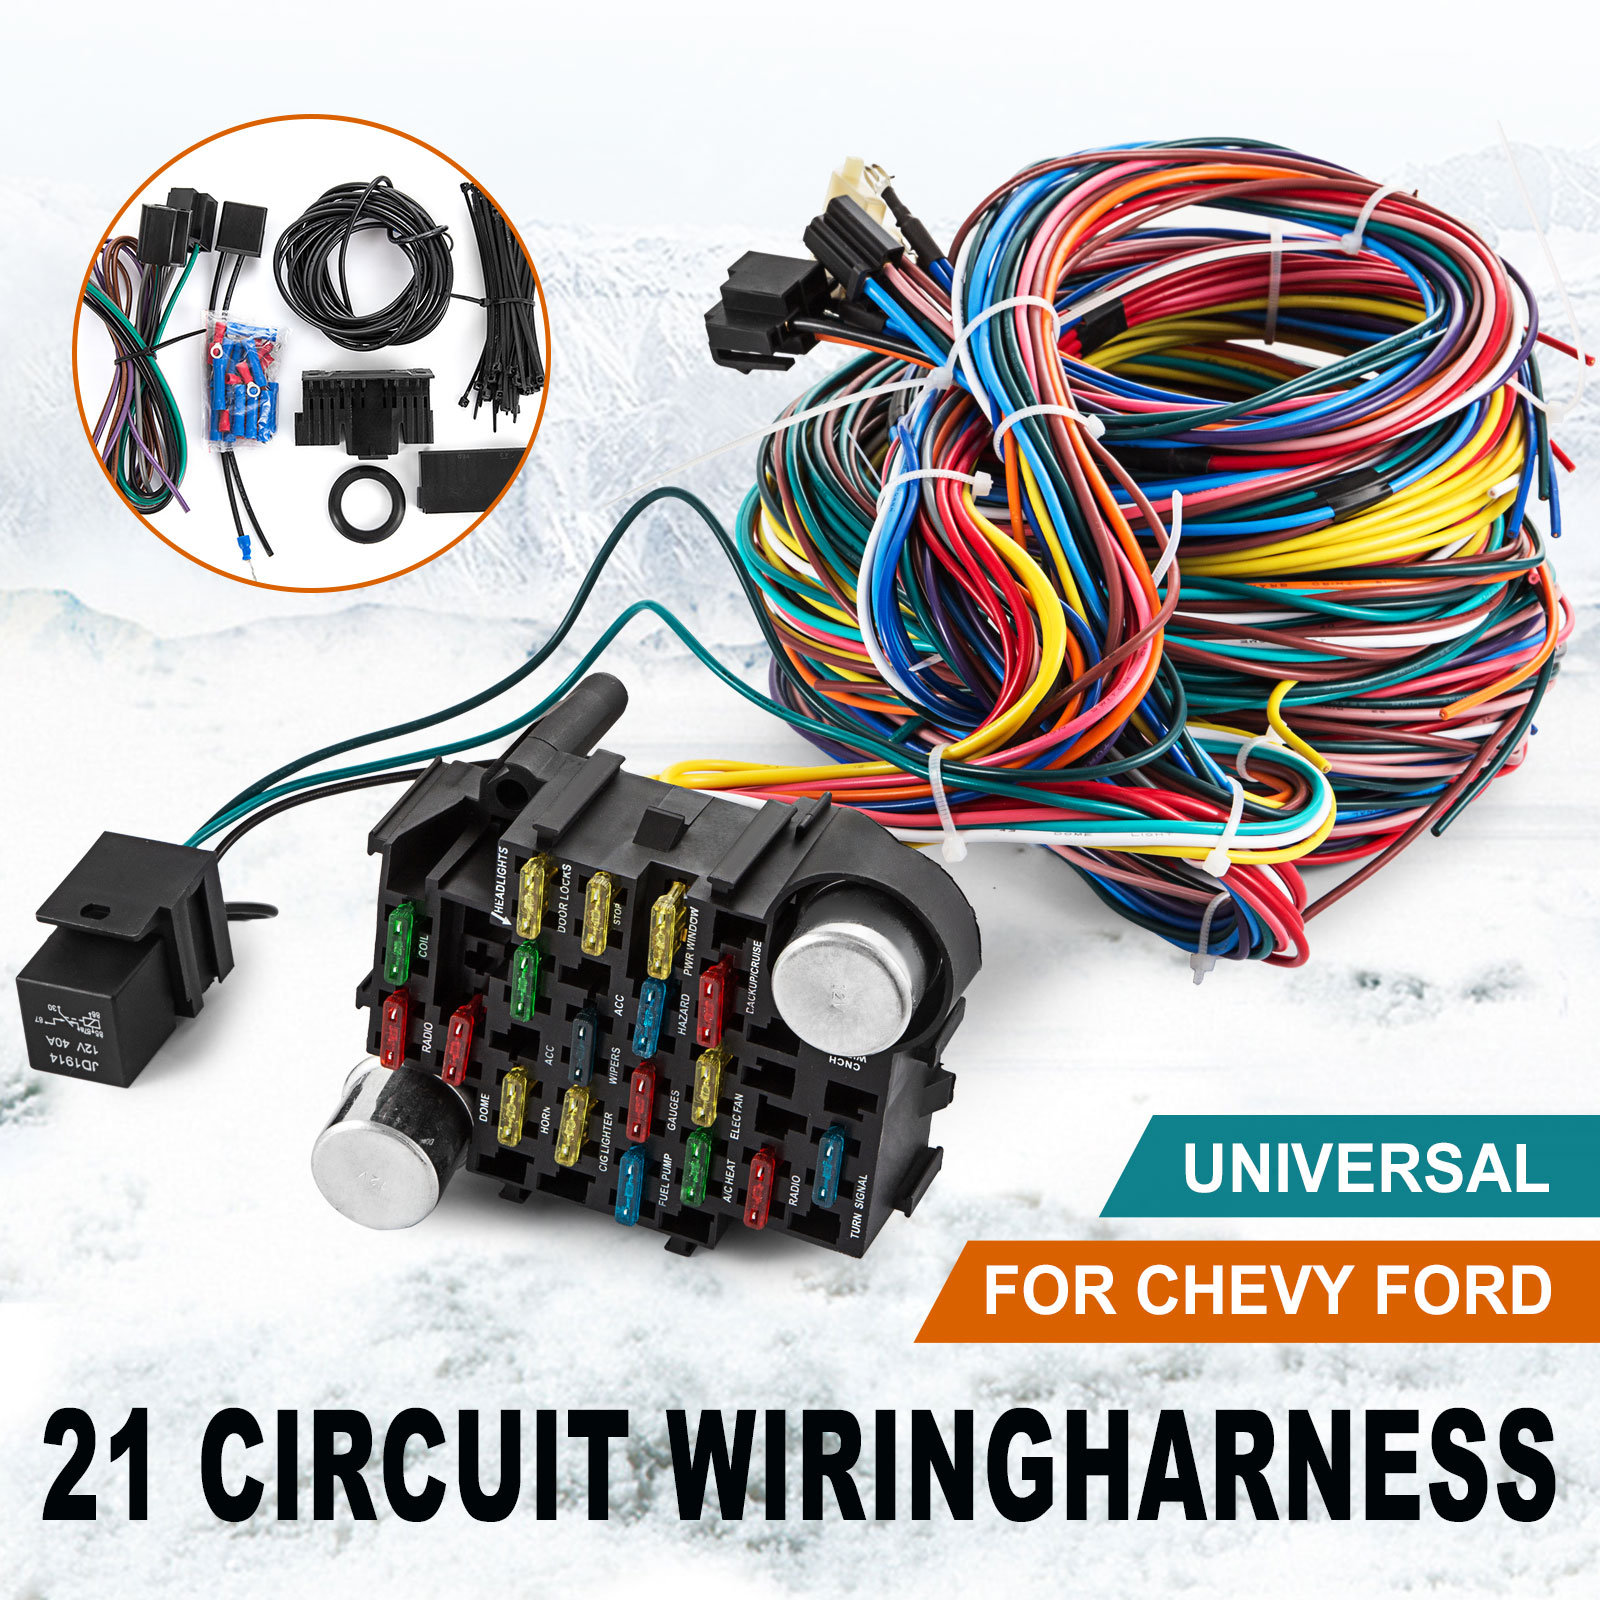 details about 21 circuit wiring harness chevy mopar ford hot rods universal  wire ez to install